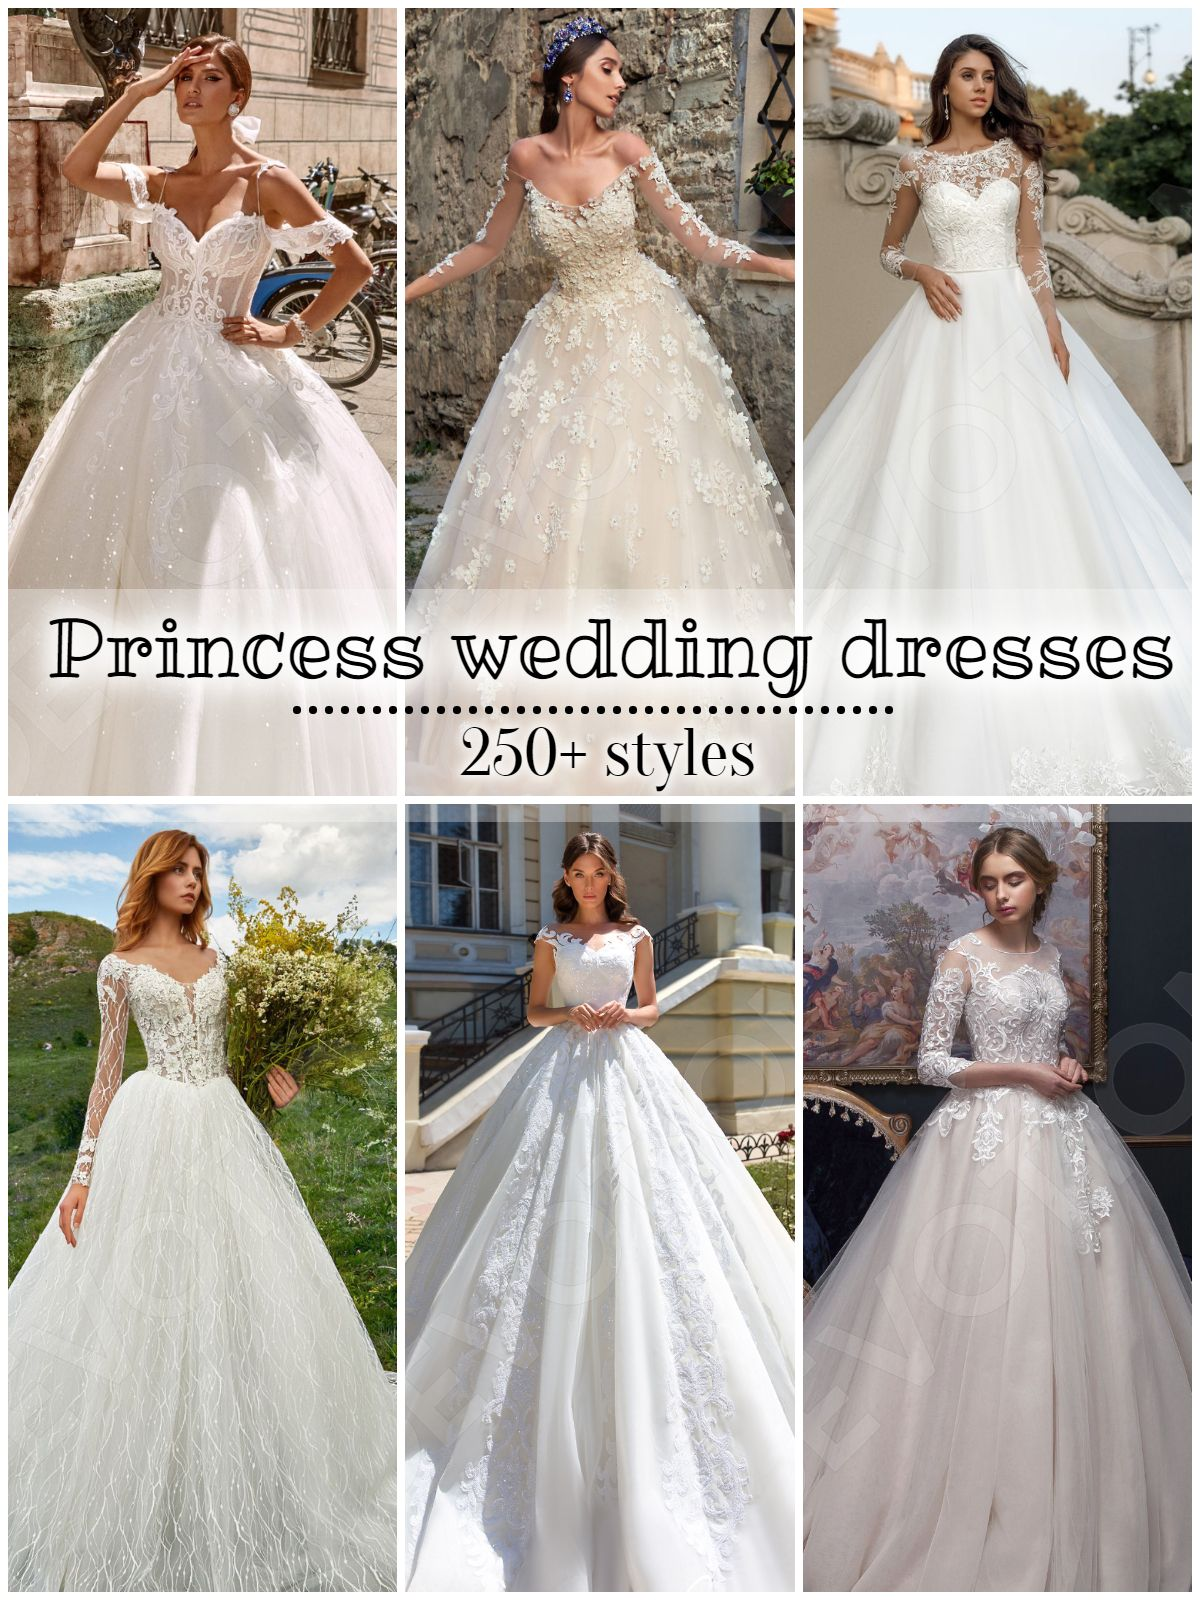 Over 250 Styles Of Princess Ball Gown Silhouette Wedding Dresses Princess Ball Gowns European Wedding Dresses Wedding Silhouette [ 1600 x 1200 Pixel ]